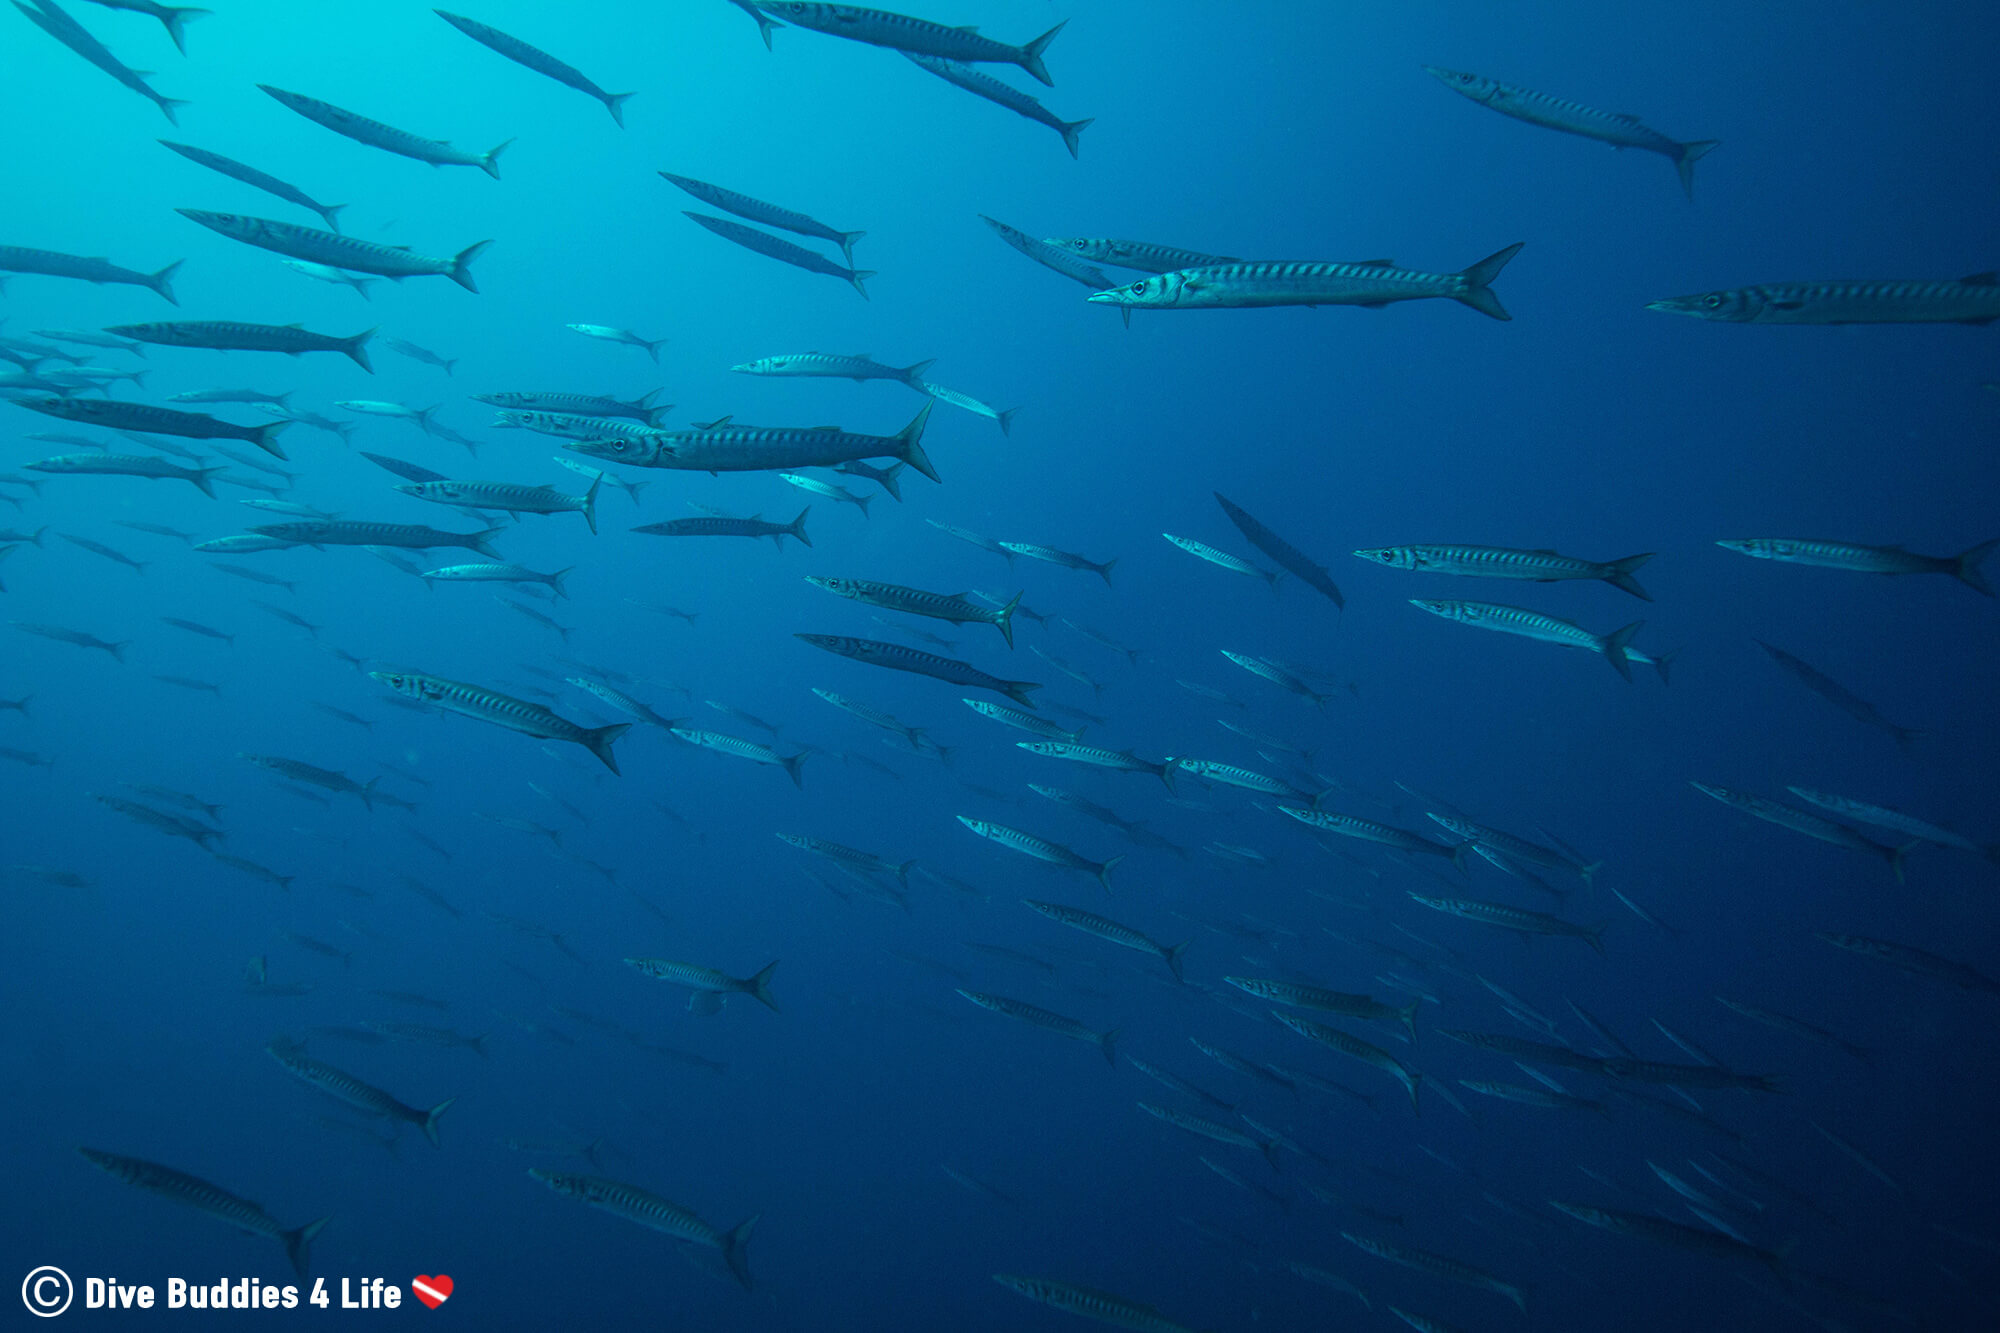 Thousands Of Barracuda Swimming In The Blue Waters Off The Amalfi Coast Of Italy, Europe